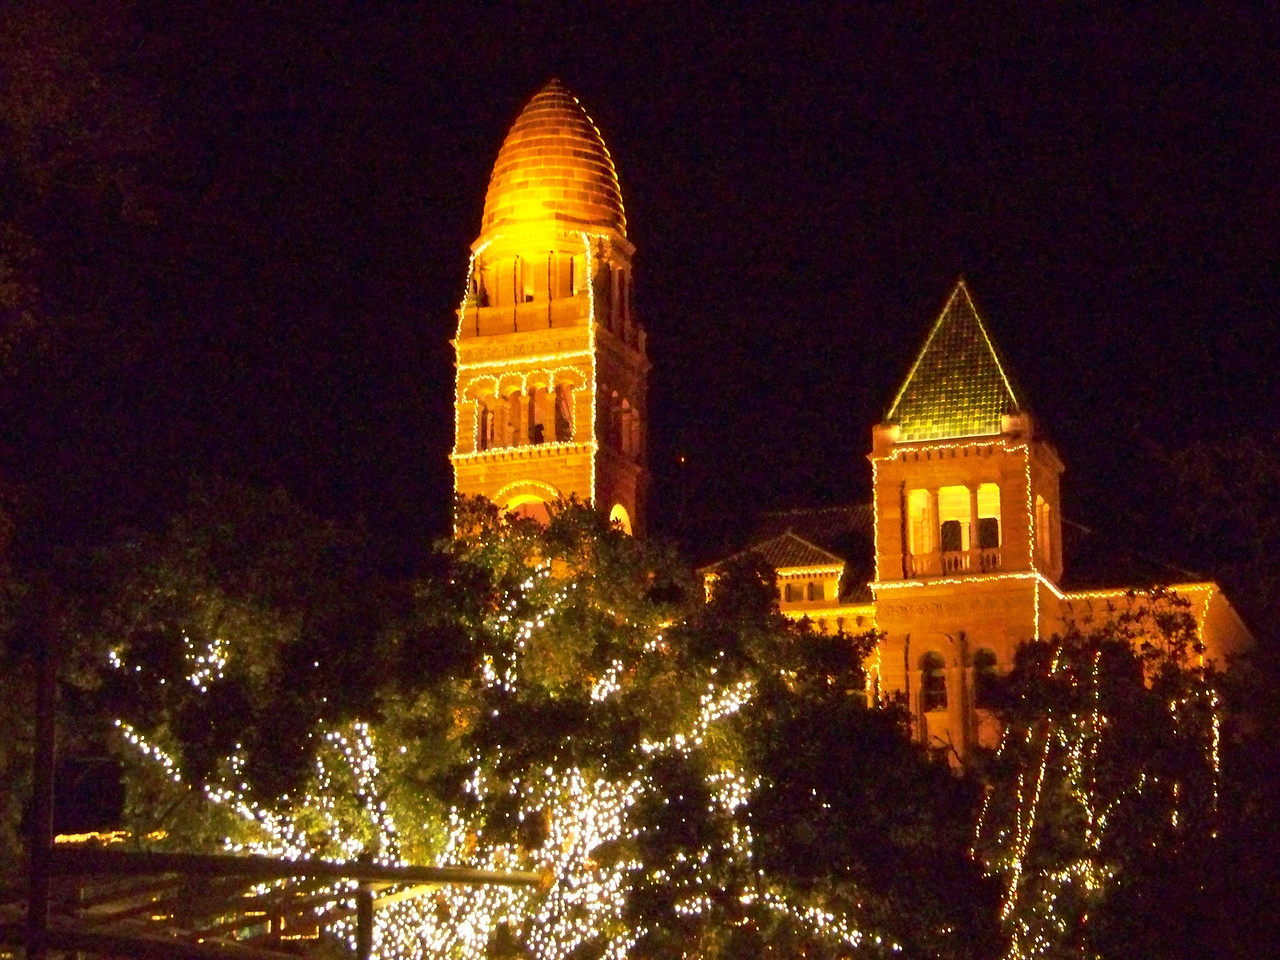 The towers of the Bexar County Courthouse (which is on one side of San Antonio's Main Plaza) were outlined in lights.